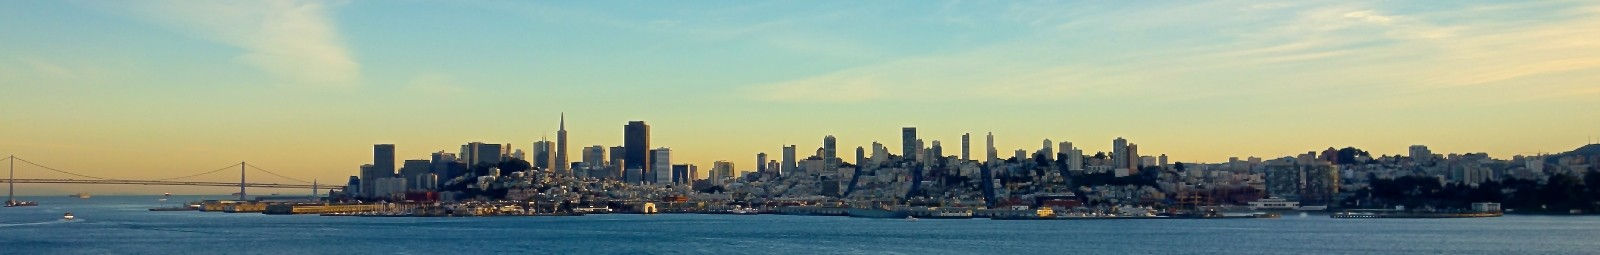 Orange Sky Adventures San Francisco Skyline